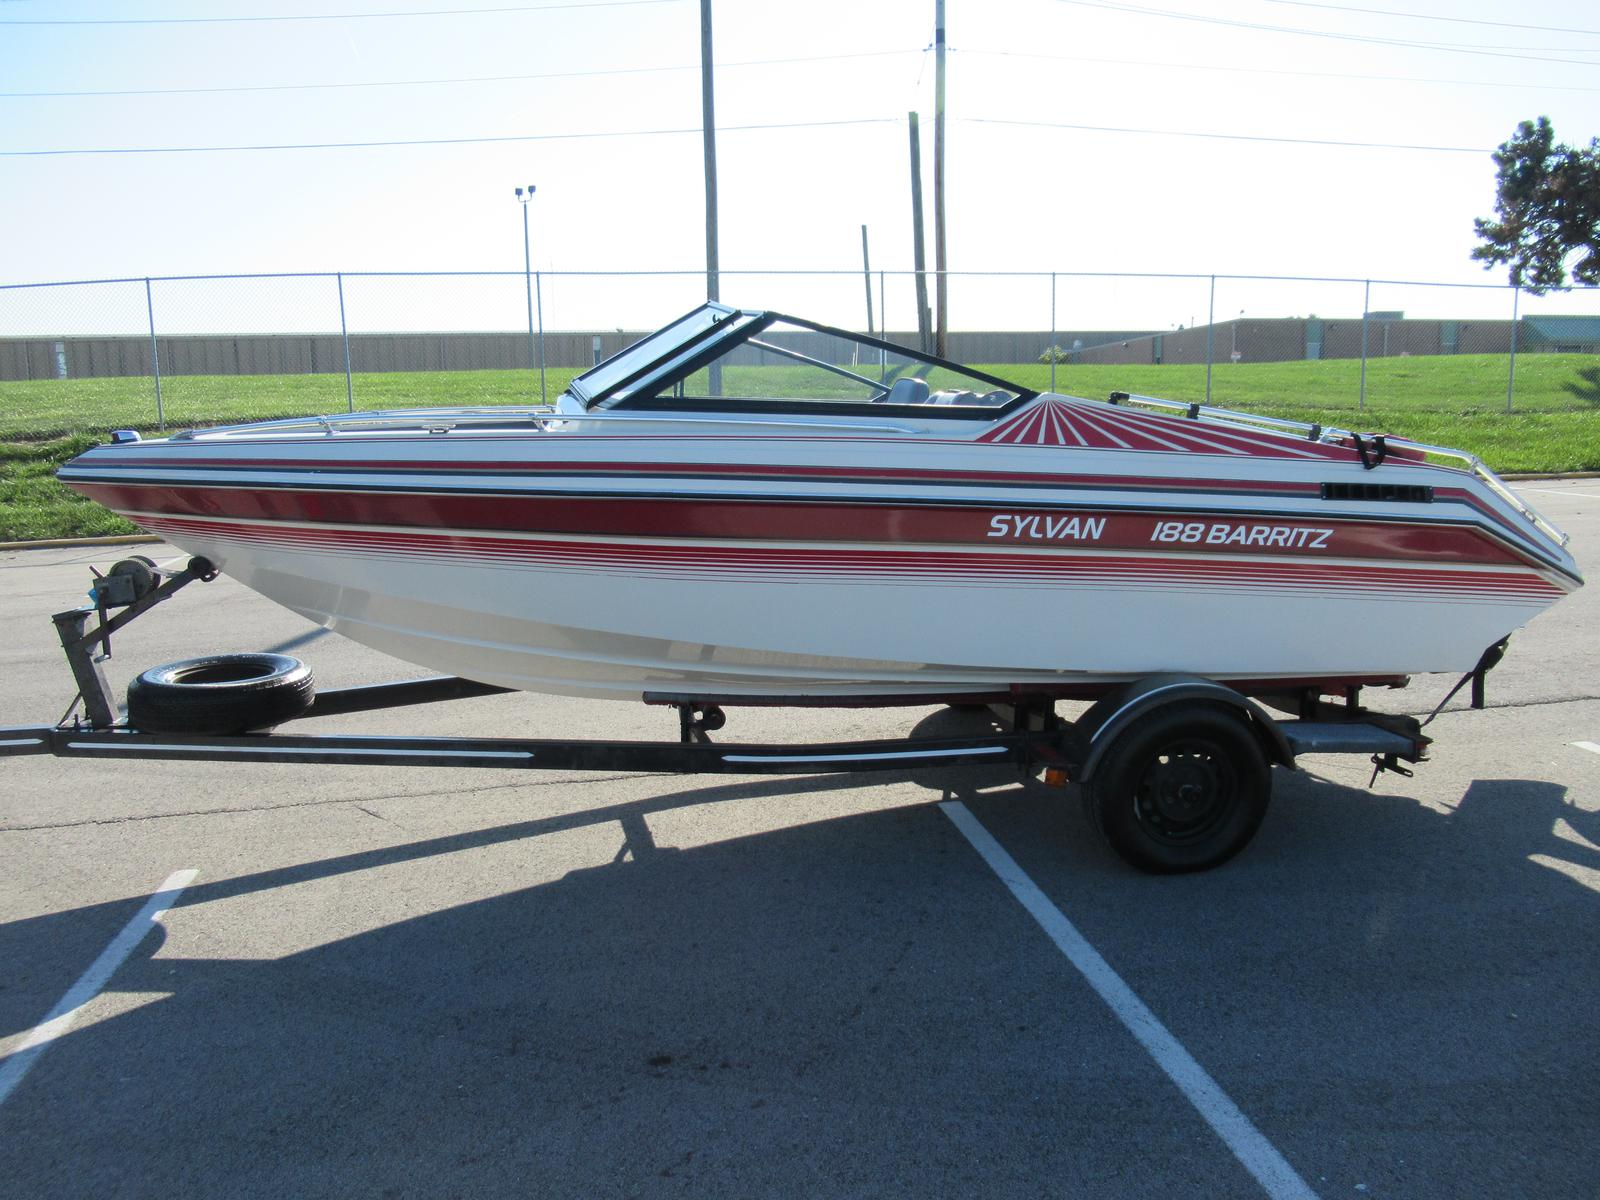 Sylvan Boat Wiring 89 Real Diagram Pontoon 1989 18 For Sale In Indianapolis Just Add Water Boats Rh Justaddwaterboats Com Fishing Logo